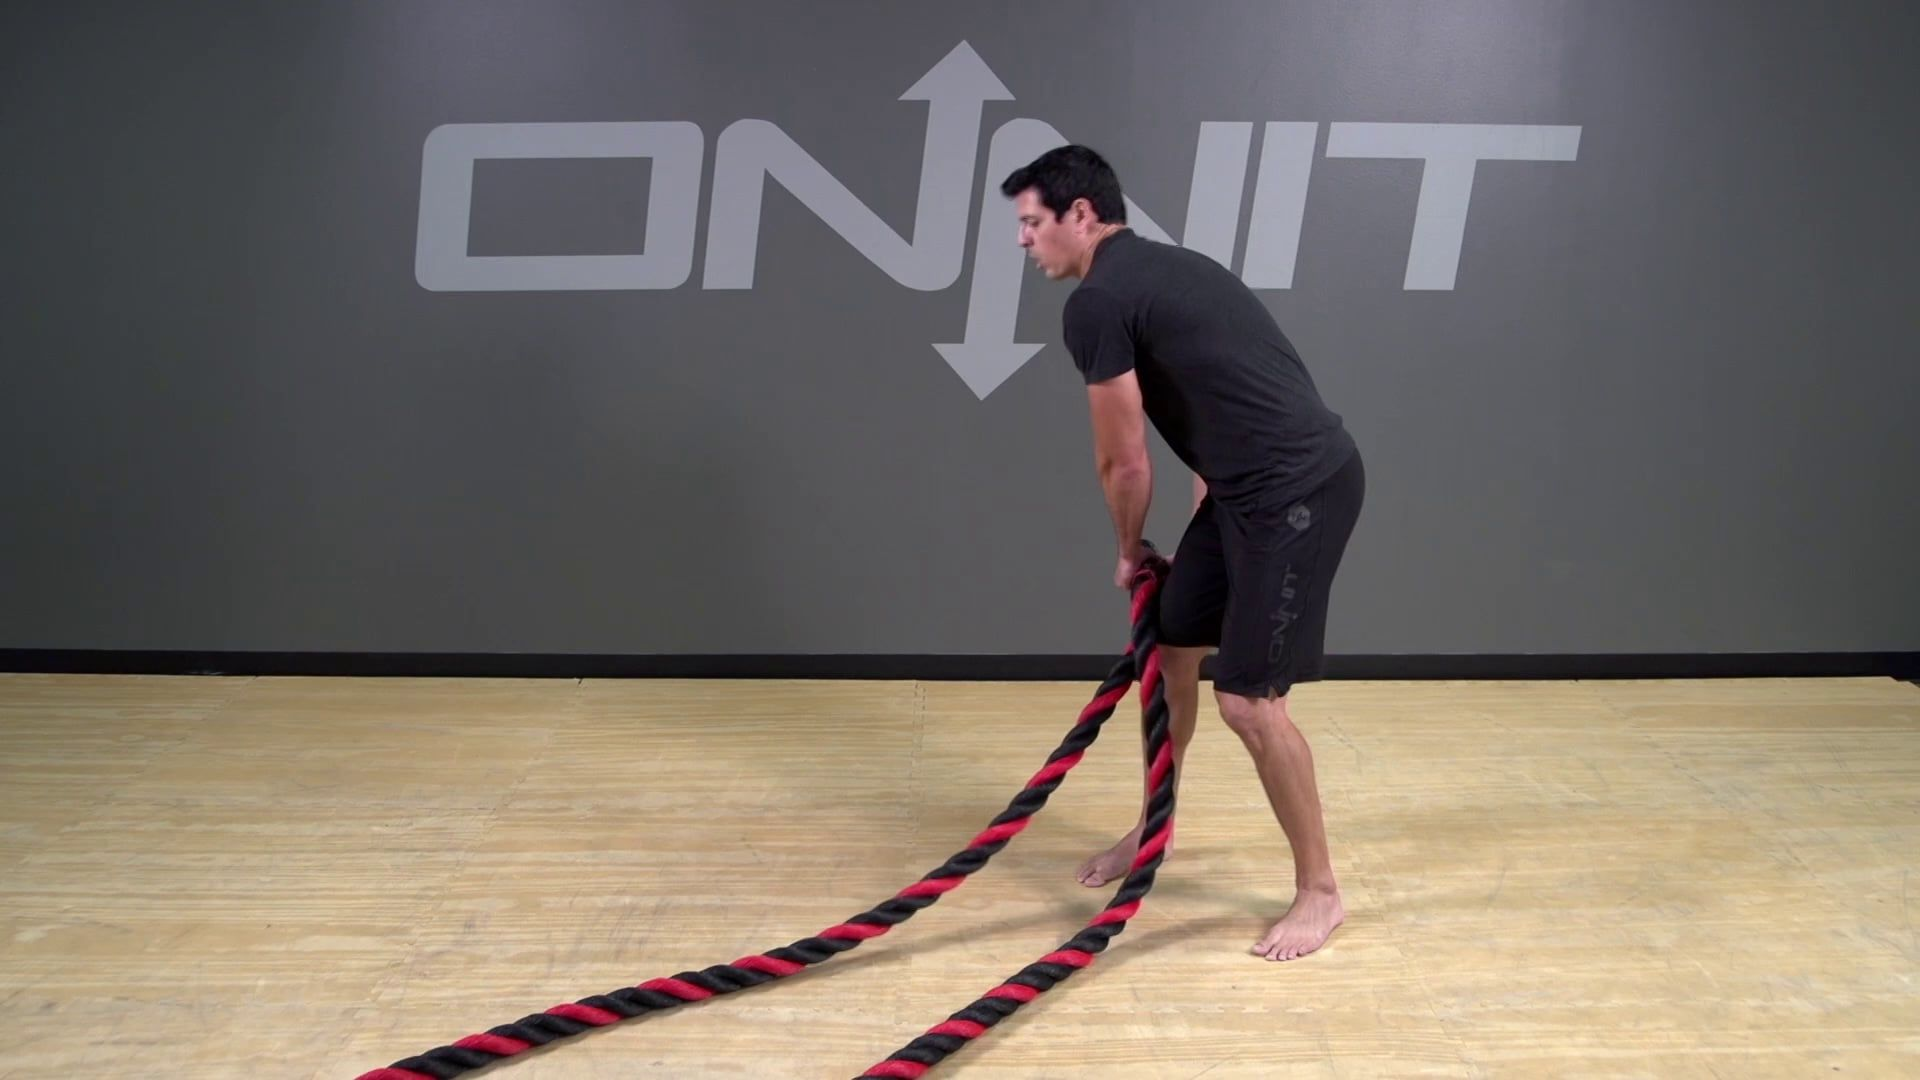 Battle Rope Exercise Hip Toss Onnit Academy Battle Ropes Rope Exercises Onnit Academy